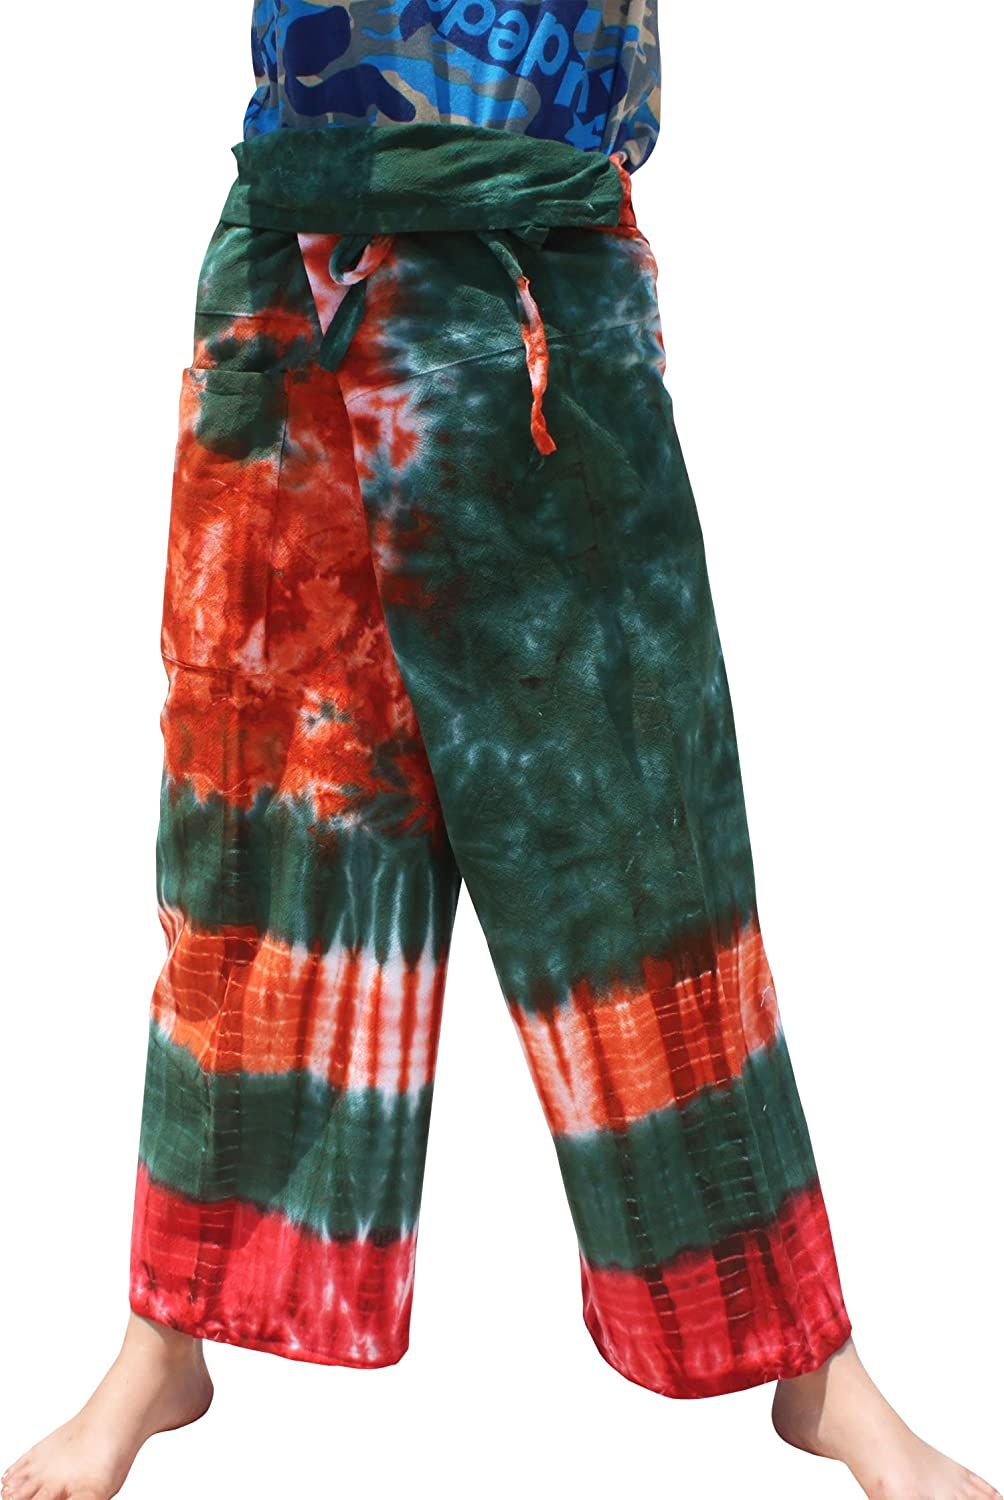 RaanPahMuang Thick Muang Cotton Thai Fishermans Pants Vibrant Tiedyed Tie Dye B079R35XQR Large|Green Orange Green Orange Large